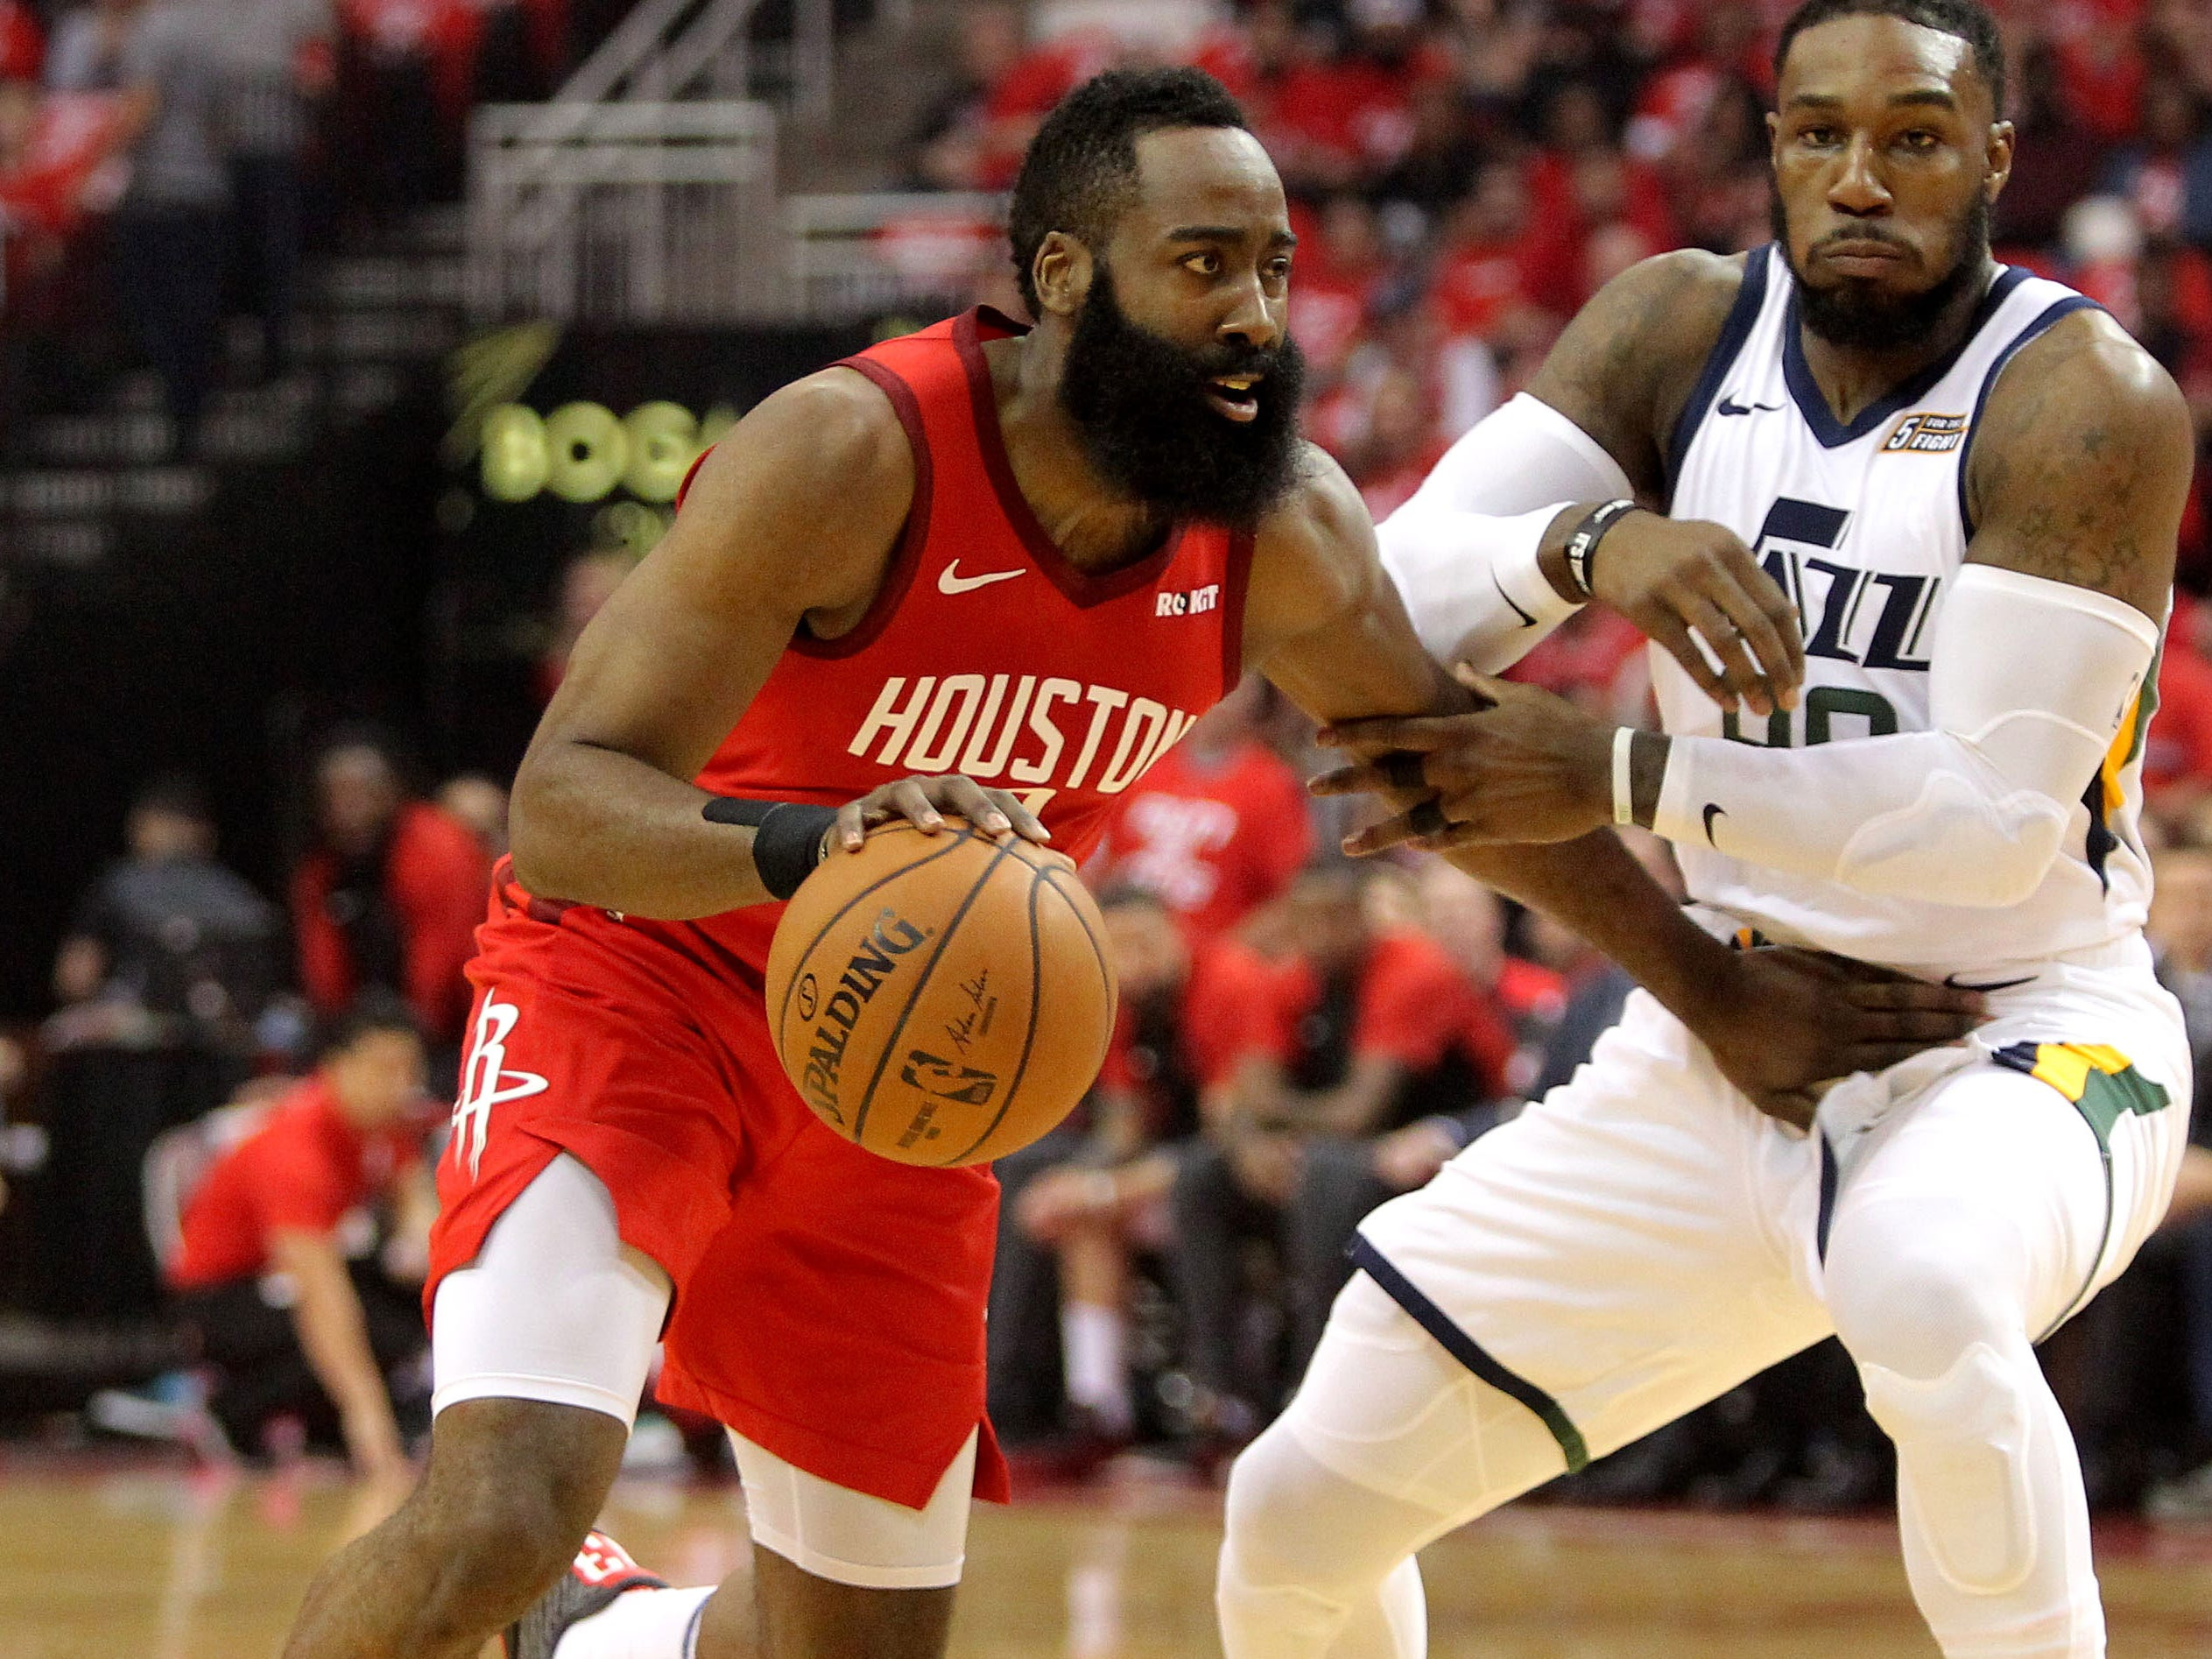 April 24: Rockets guard James Harden (13) looks to drive against Jazz defender Jae Crowder (99) during Game 5 in Houston.